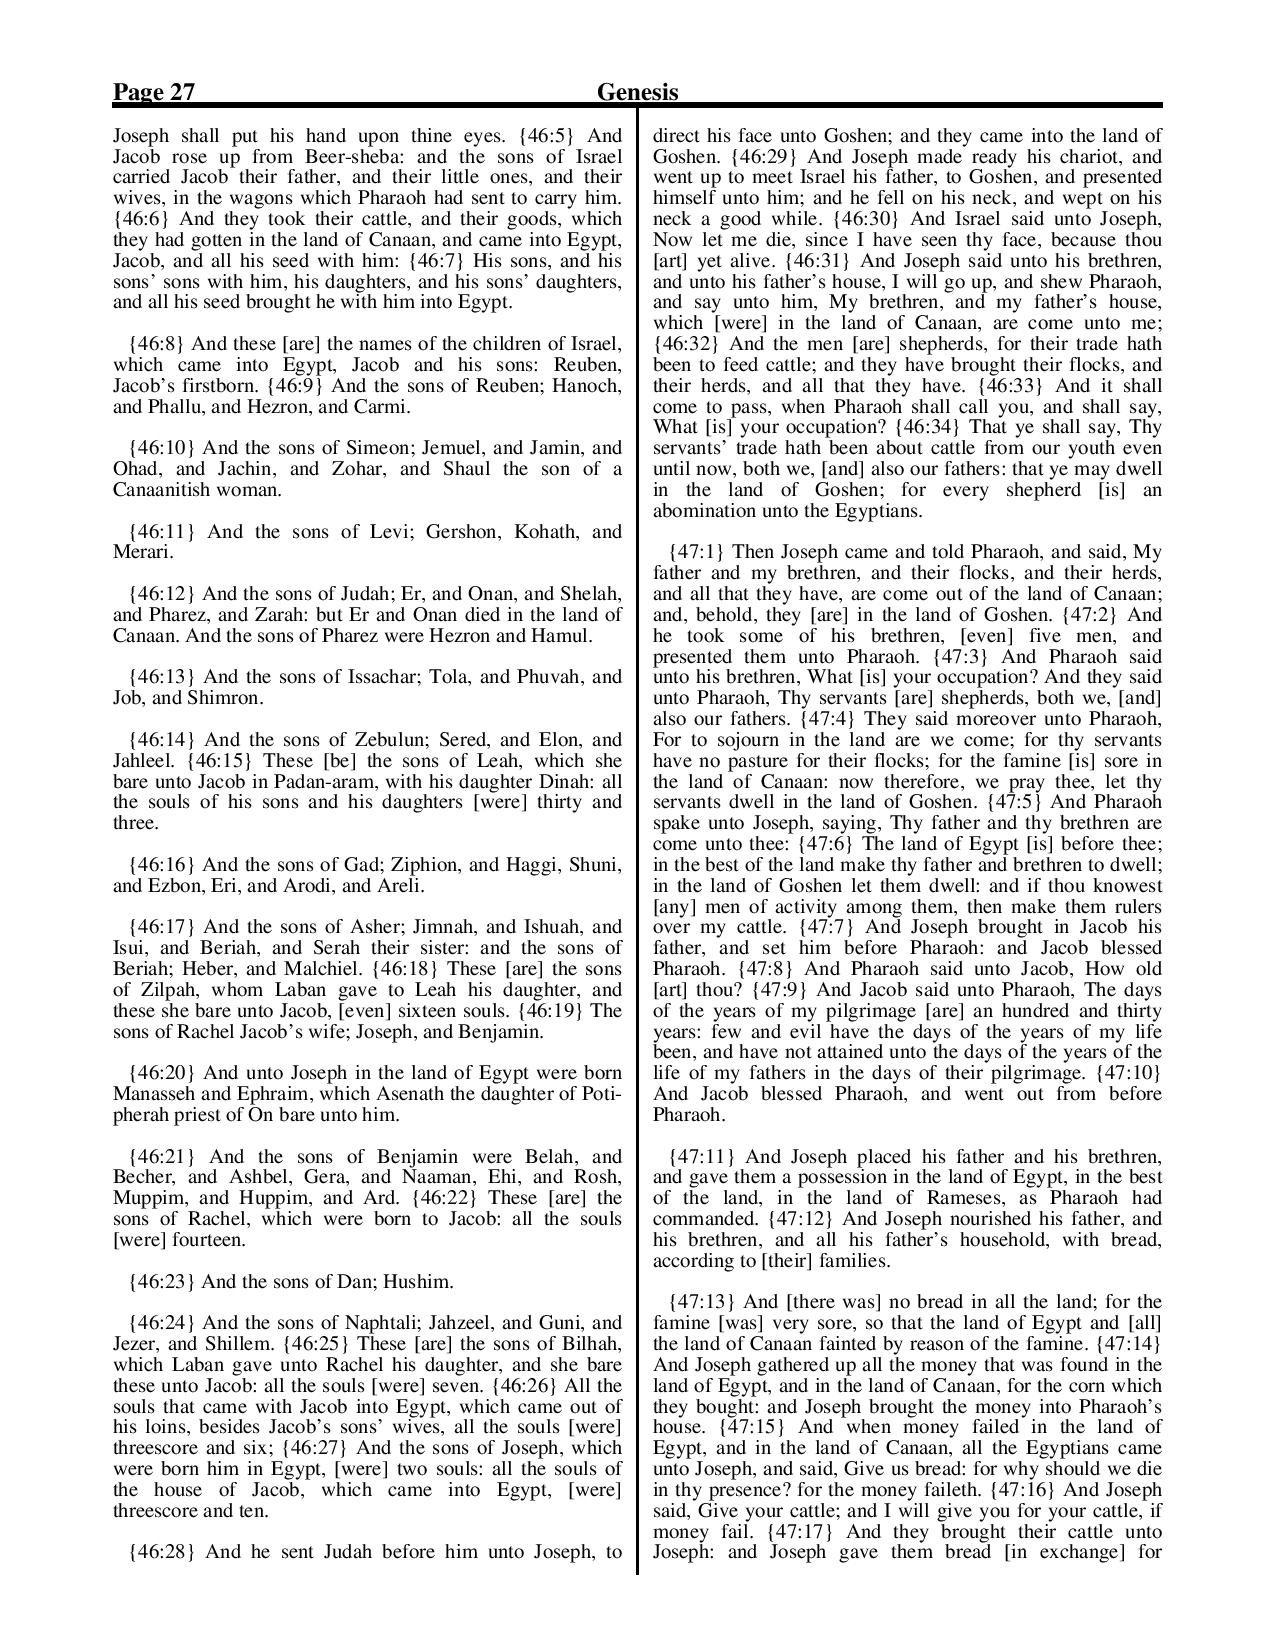 King-James-Bible-KJV-Bible-PDF-page-048